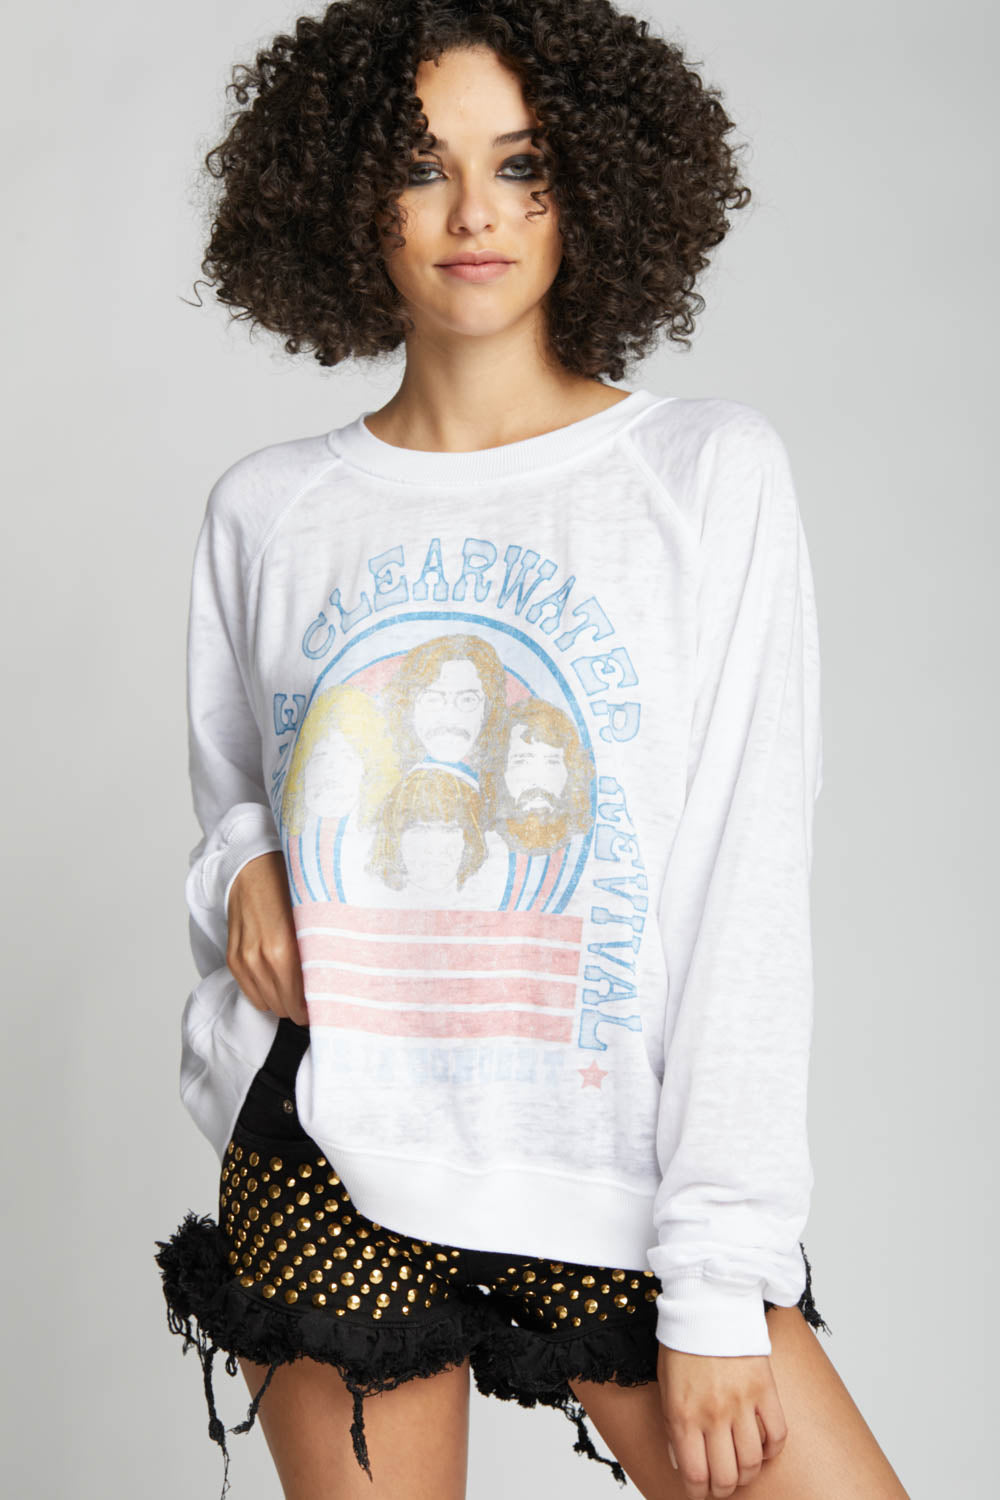 Creedence Clearwater Revival Concert Sweatshirt